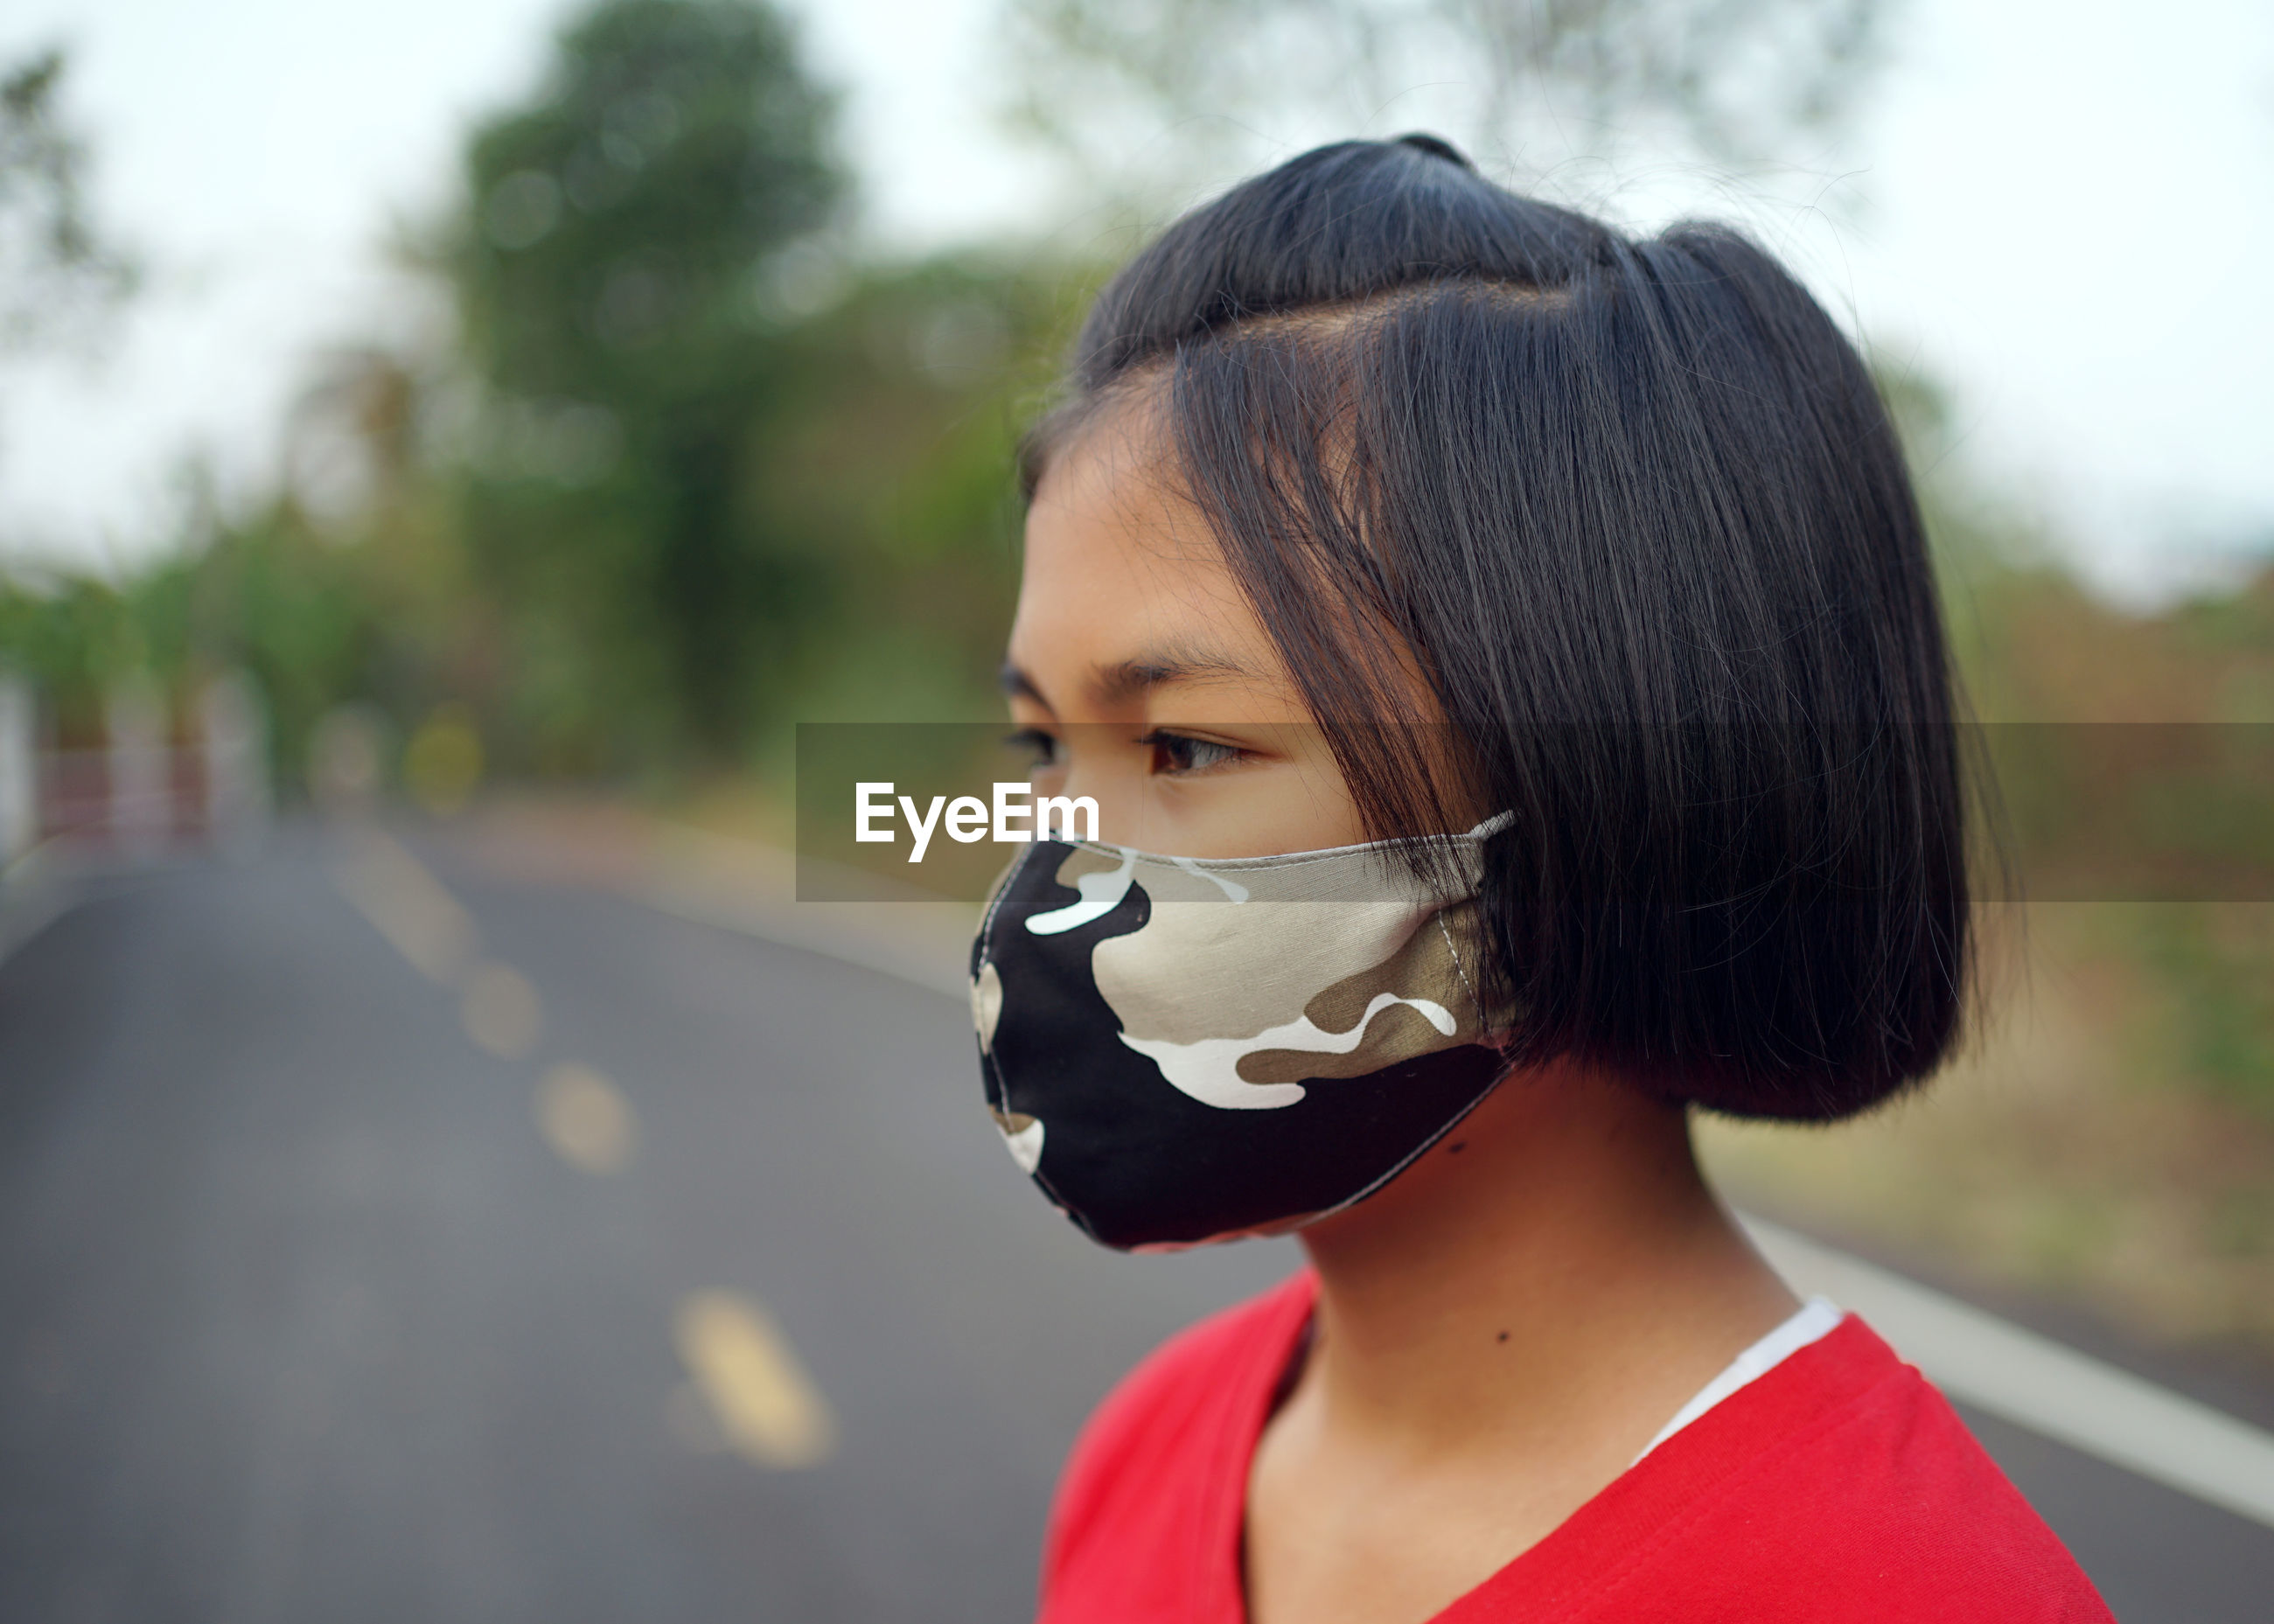 Close-up of girl wearing flu mask standing outdoors